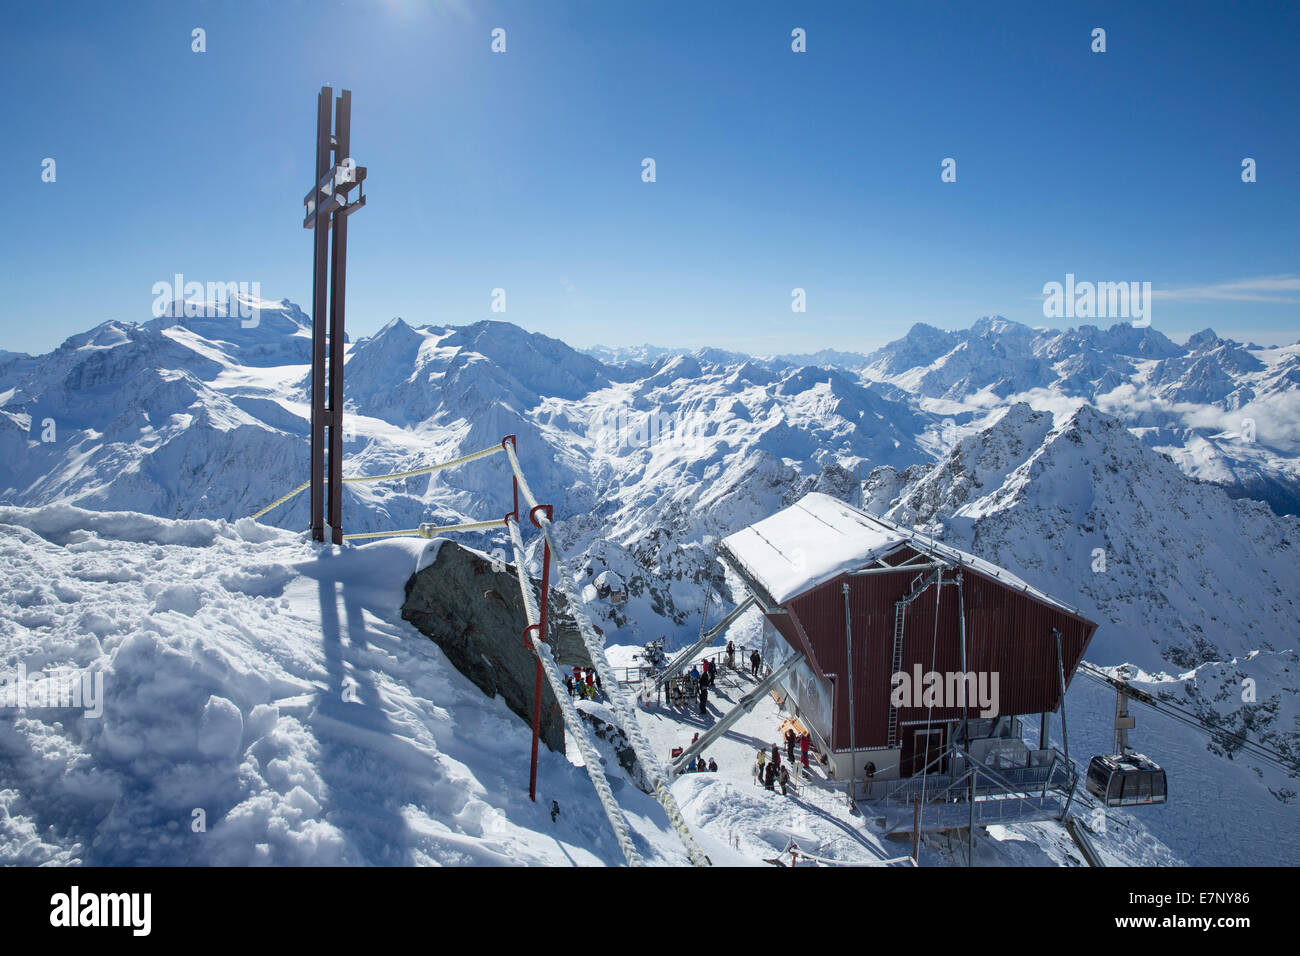 Mont fort, ropeway, cable railway, Mont fort, Verbier, view, Grand Combin, Montblanc, winter, canton, VS, Valais, - Stock Image